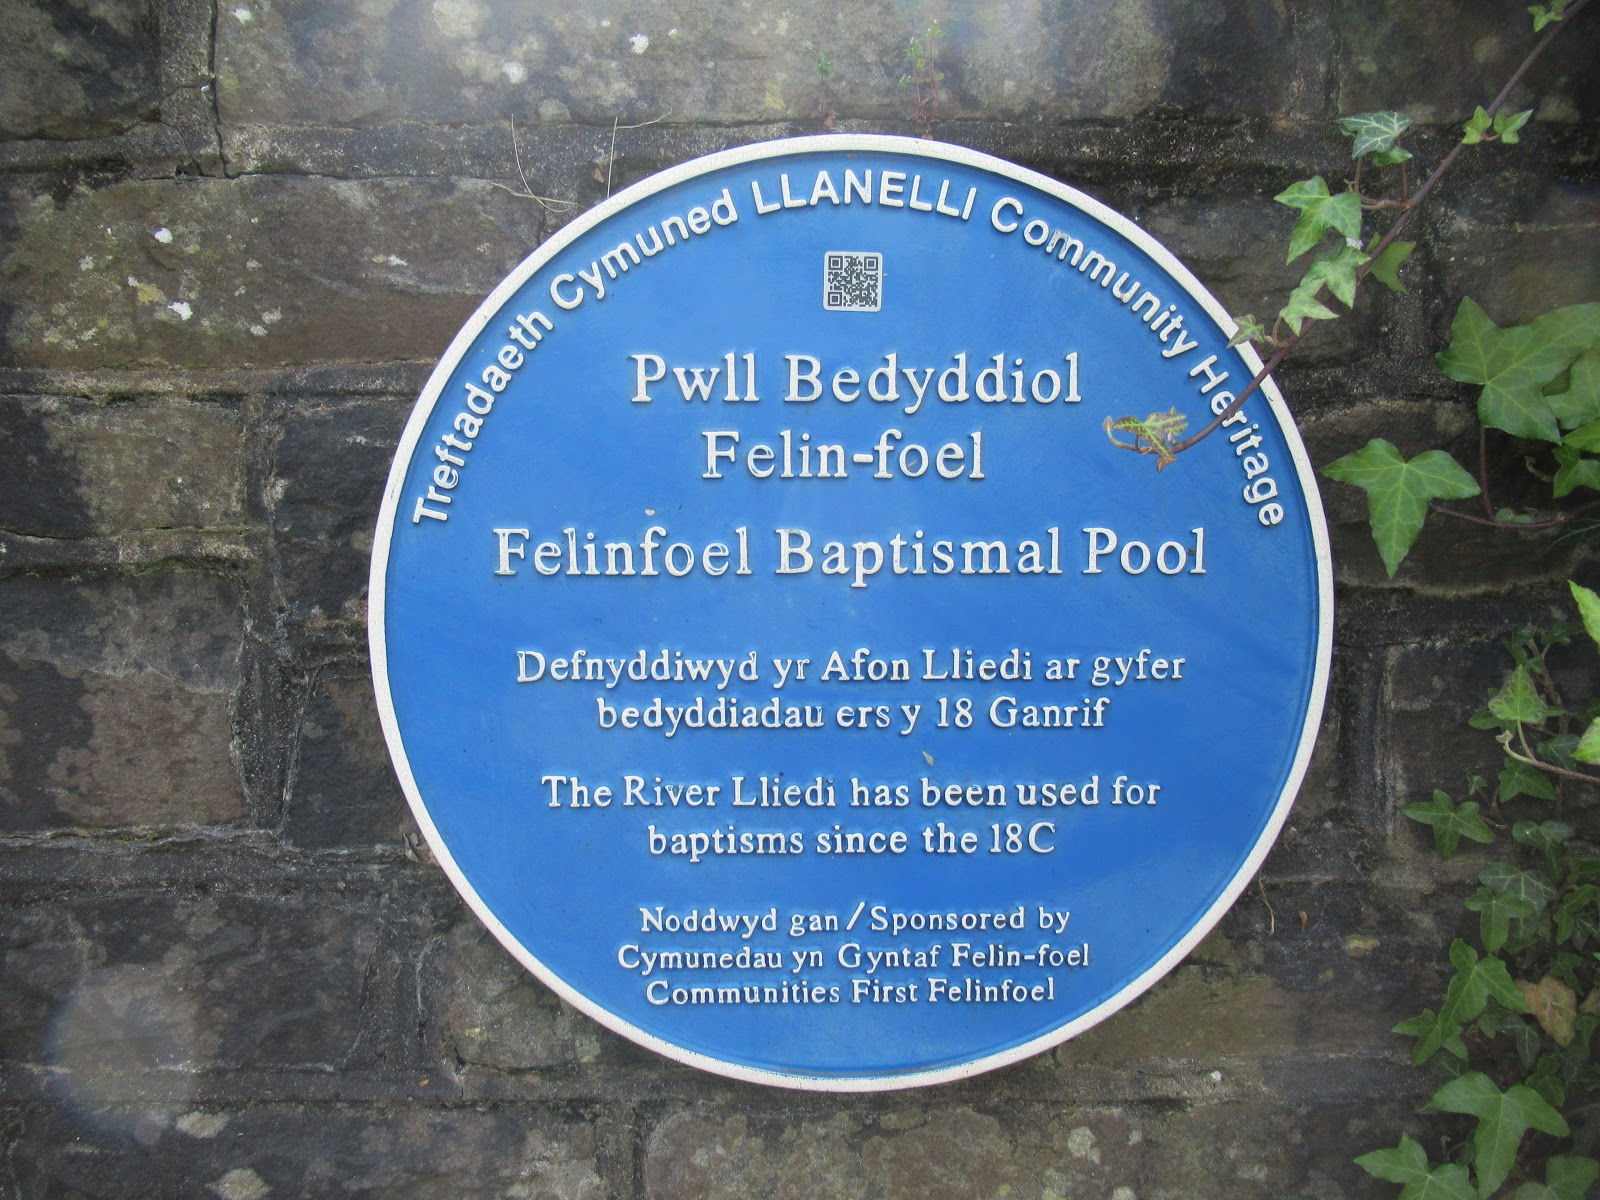 the felinfoel baptistry in the river lliedi has been used at least since early 1700 s though there were baptists in the area much earlier than that